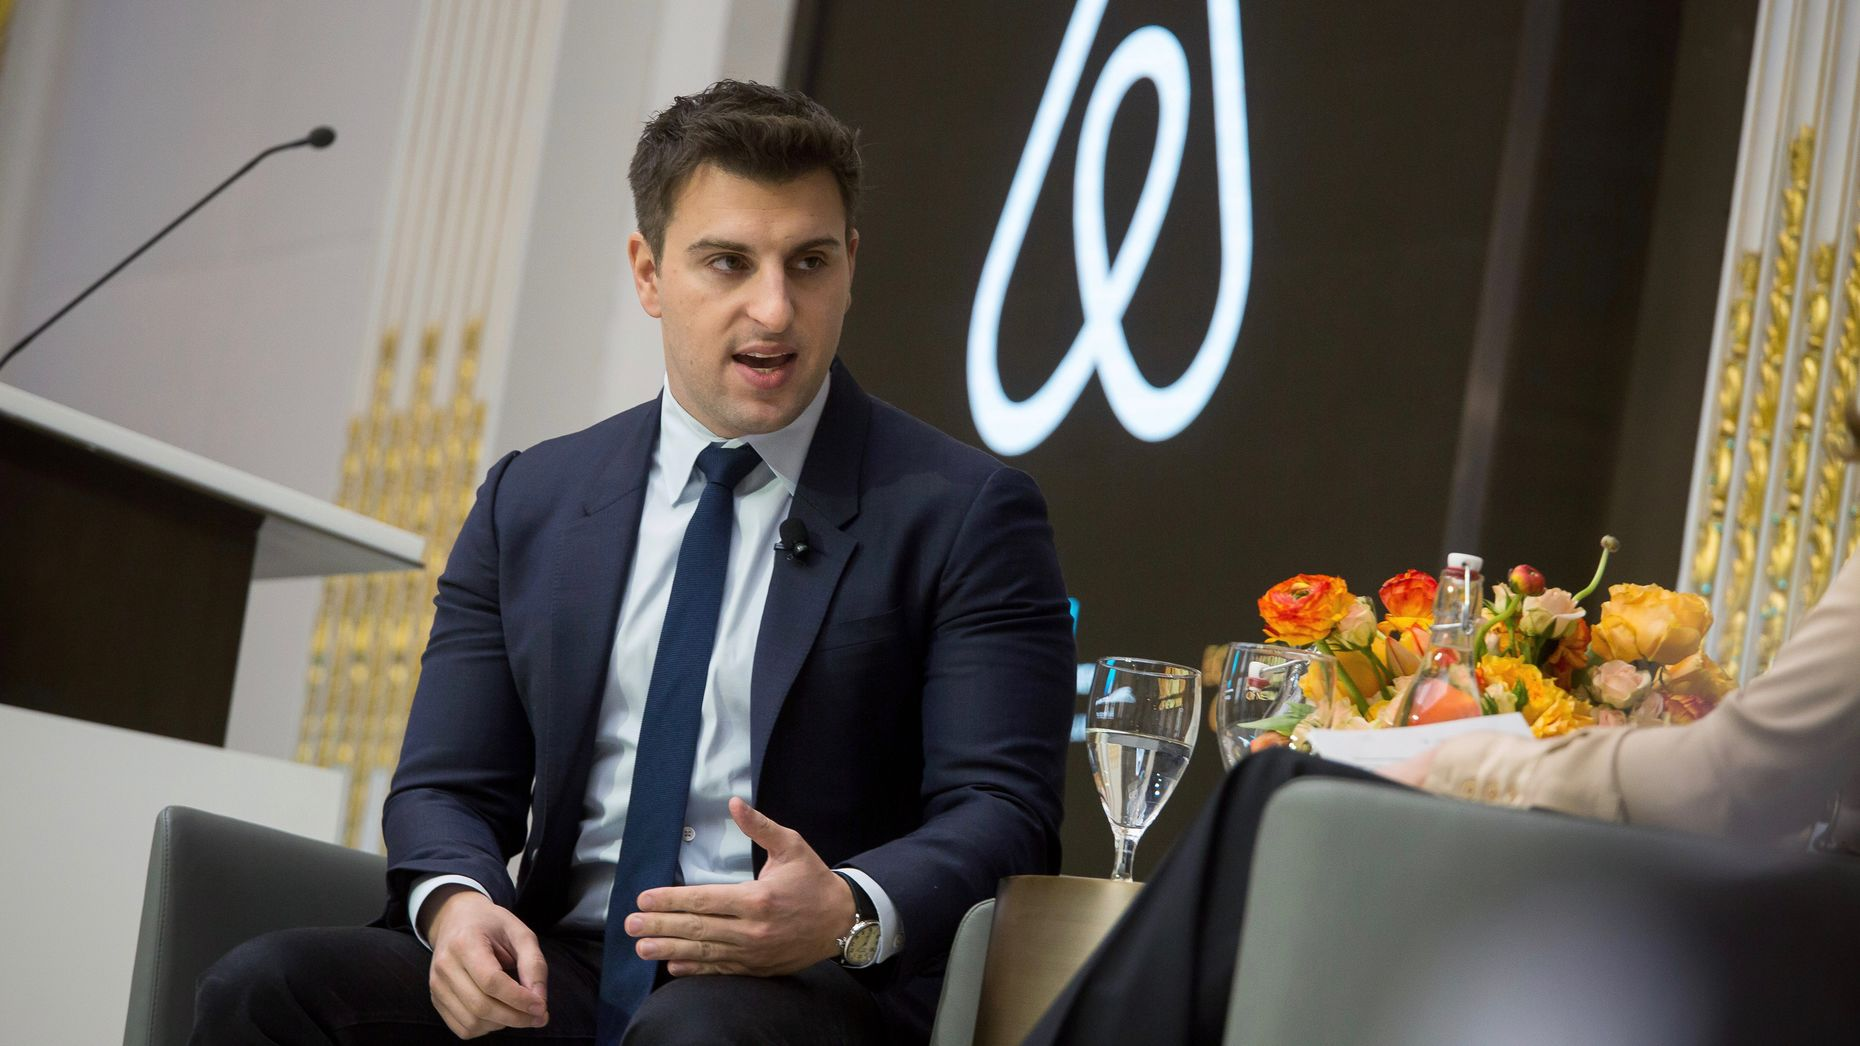 Airbnb CEO Brian Chesky. Photo by Bloomberg.